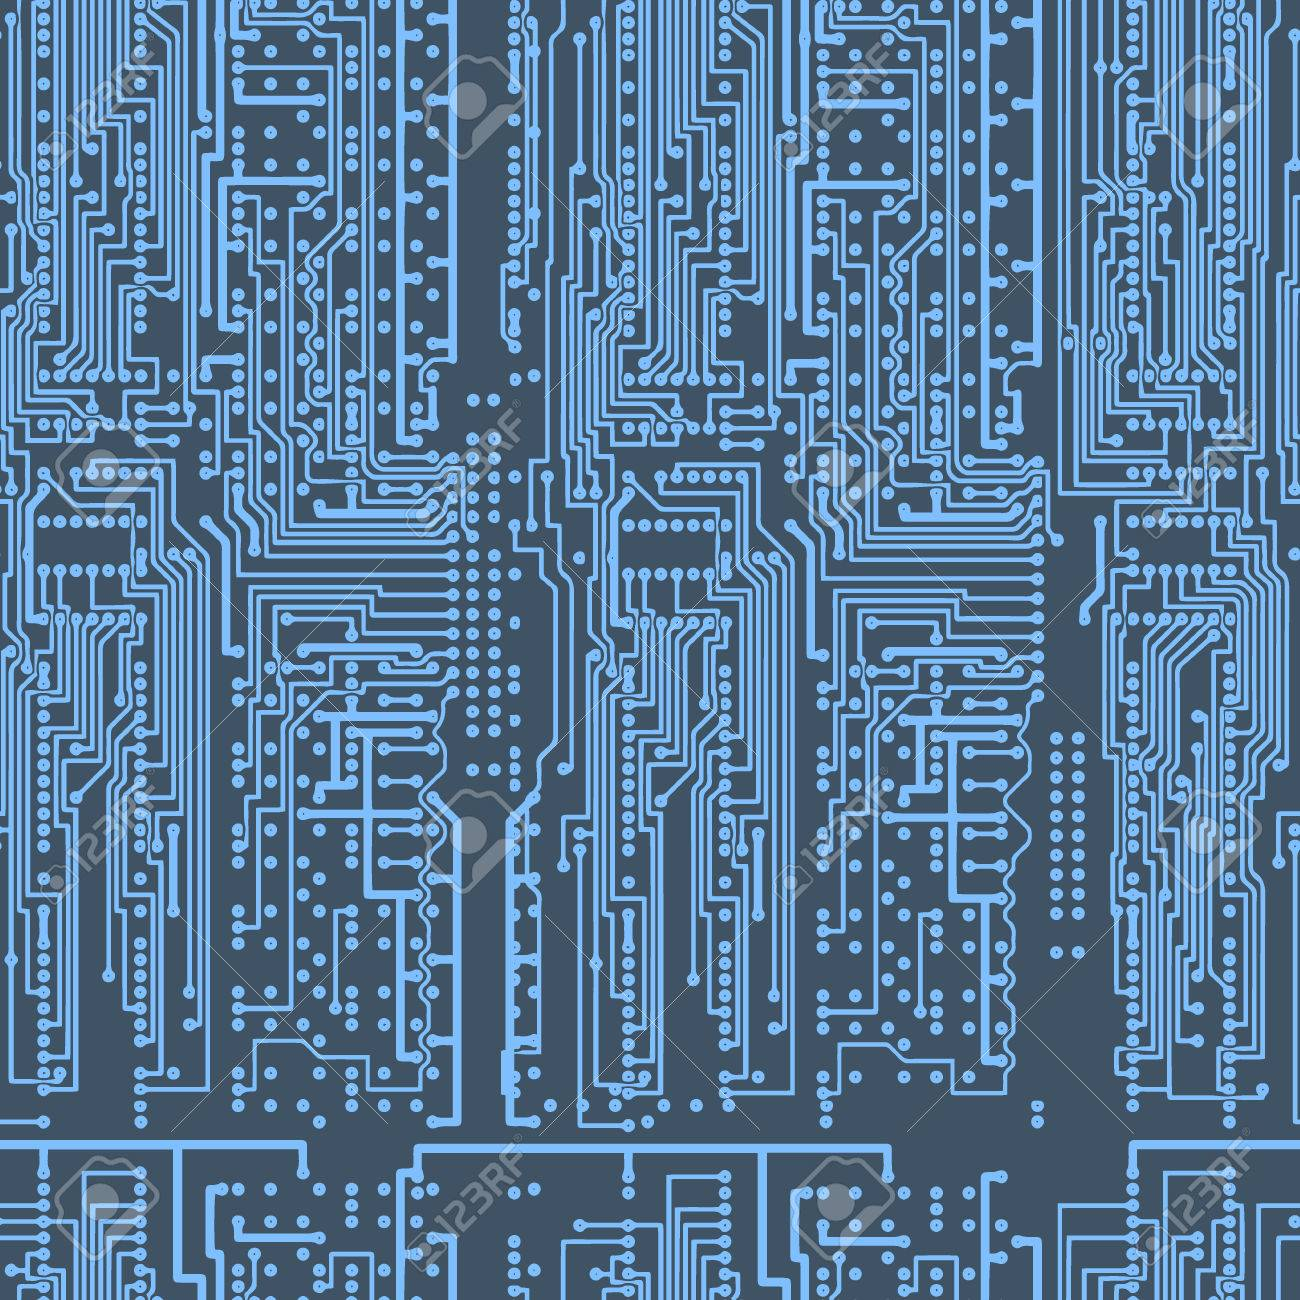 Blue Circuit Board Images Stock Photos Vectors Wallpaper Pattern Bluecircuit Electronic Tileable Seamless Repeating Background Continuous Left Right Up